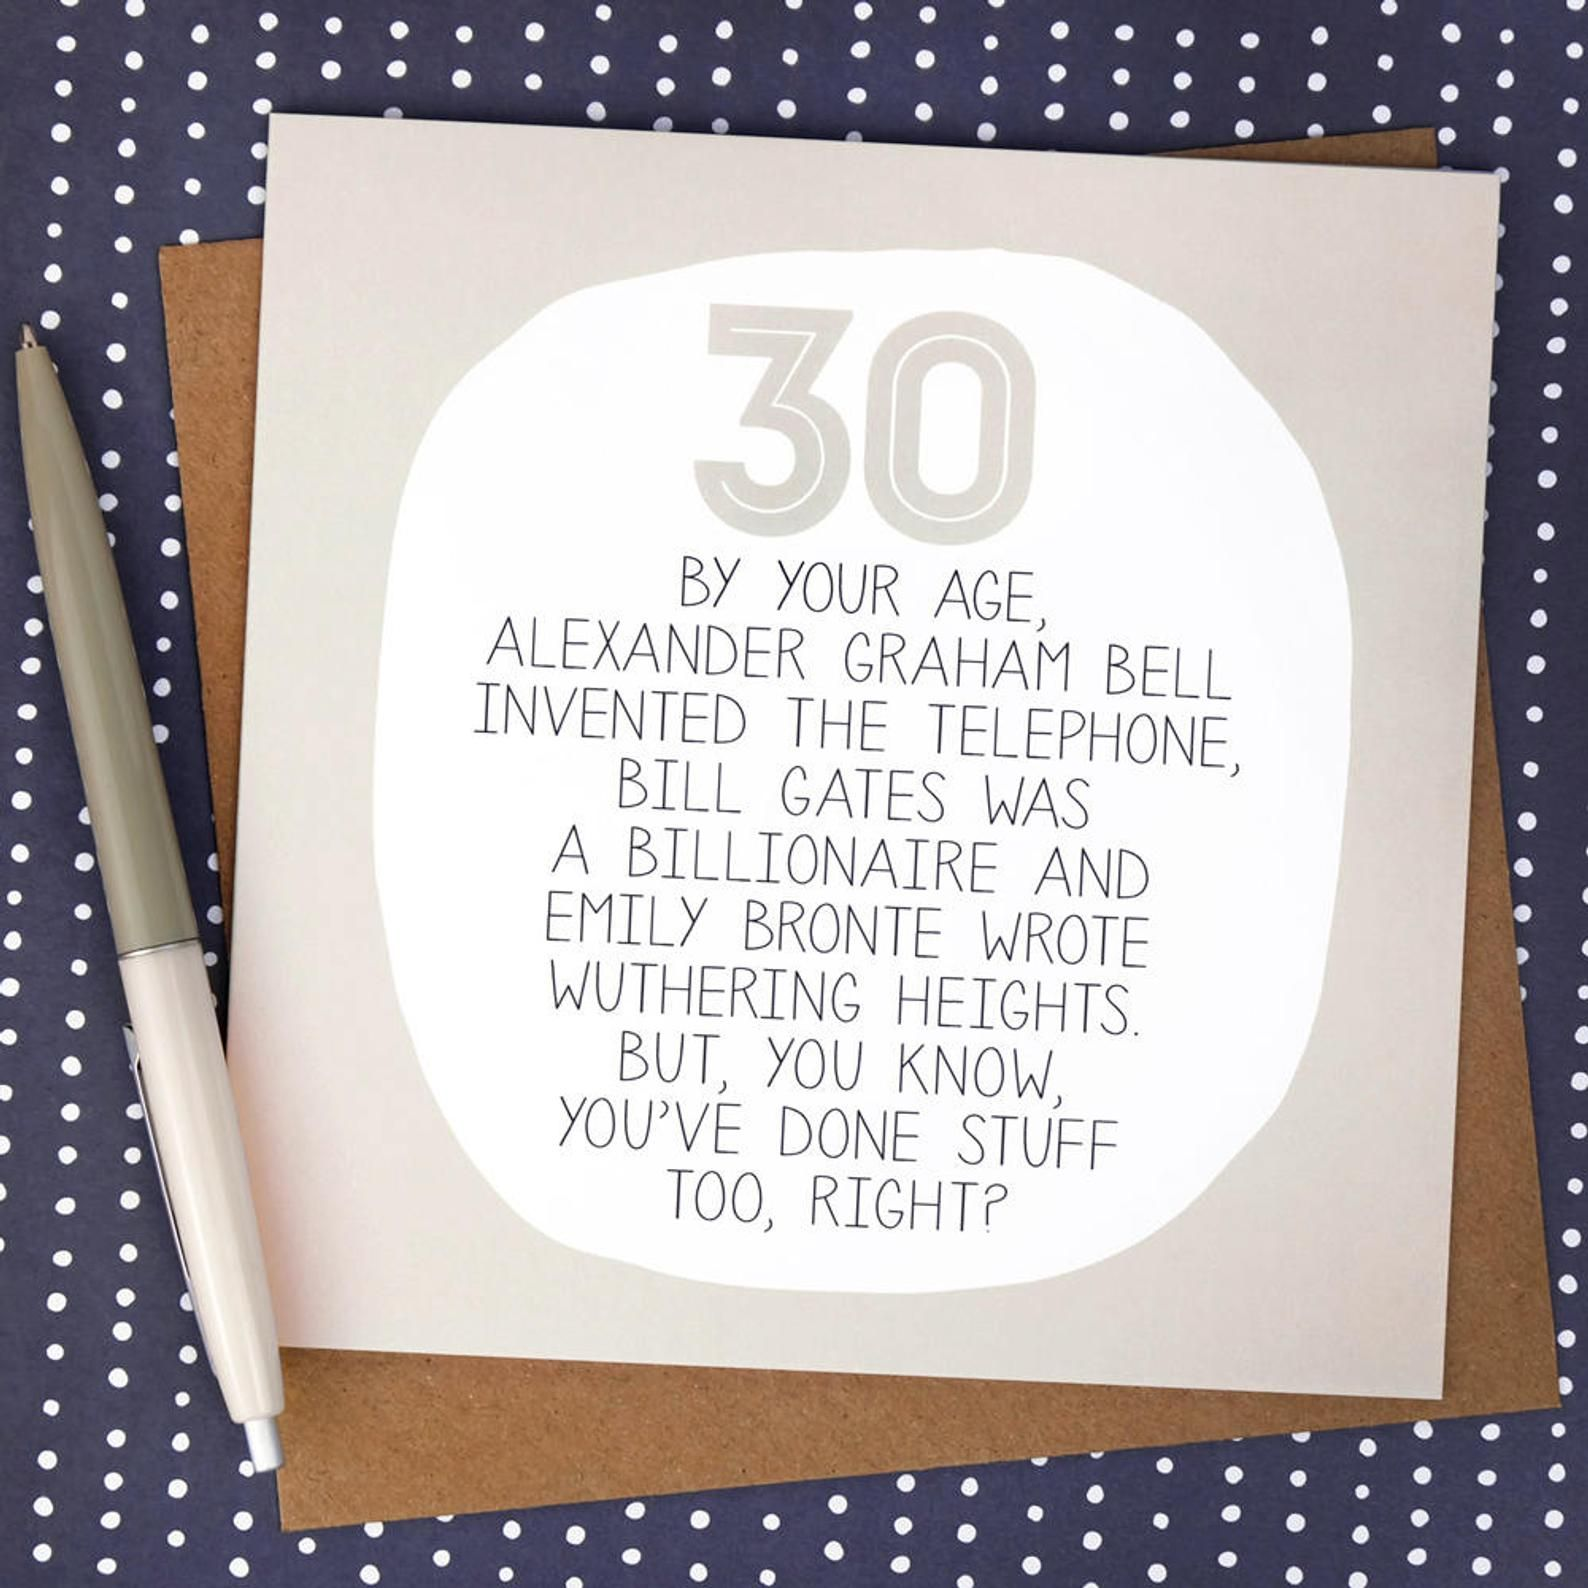 Funny 30th Birthday Card Etsy Funny 30th Birthday Cards 30th Birthday Cards Birthday Card Messages